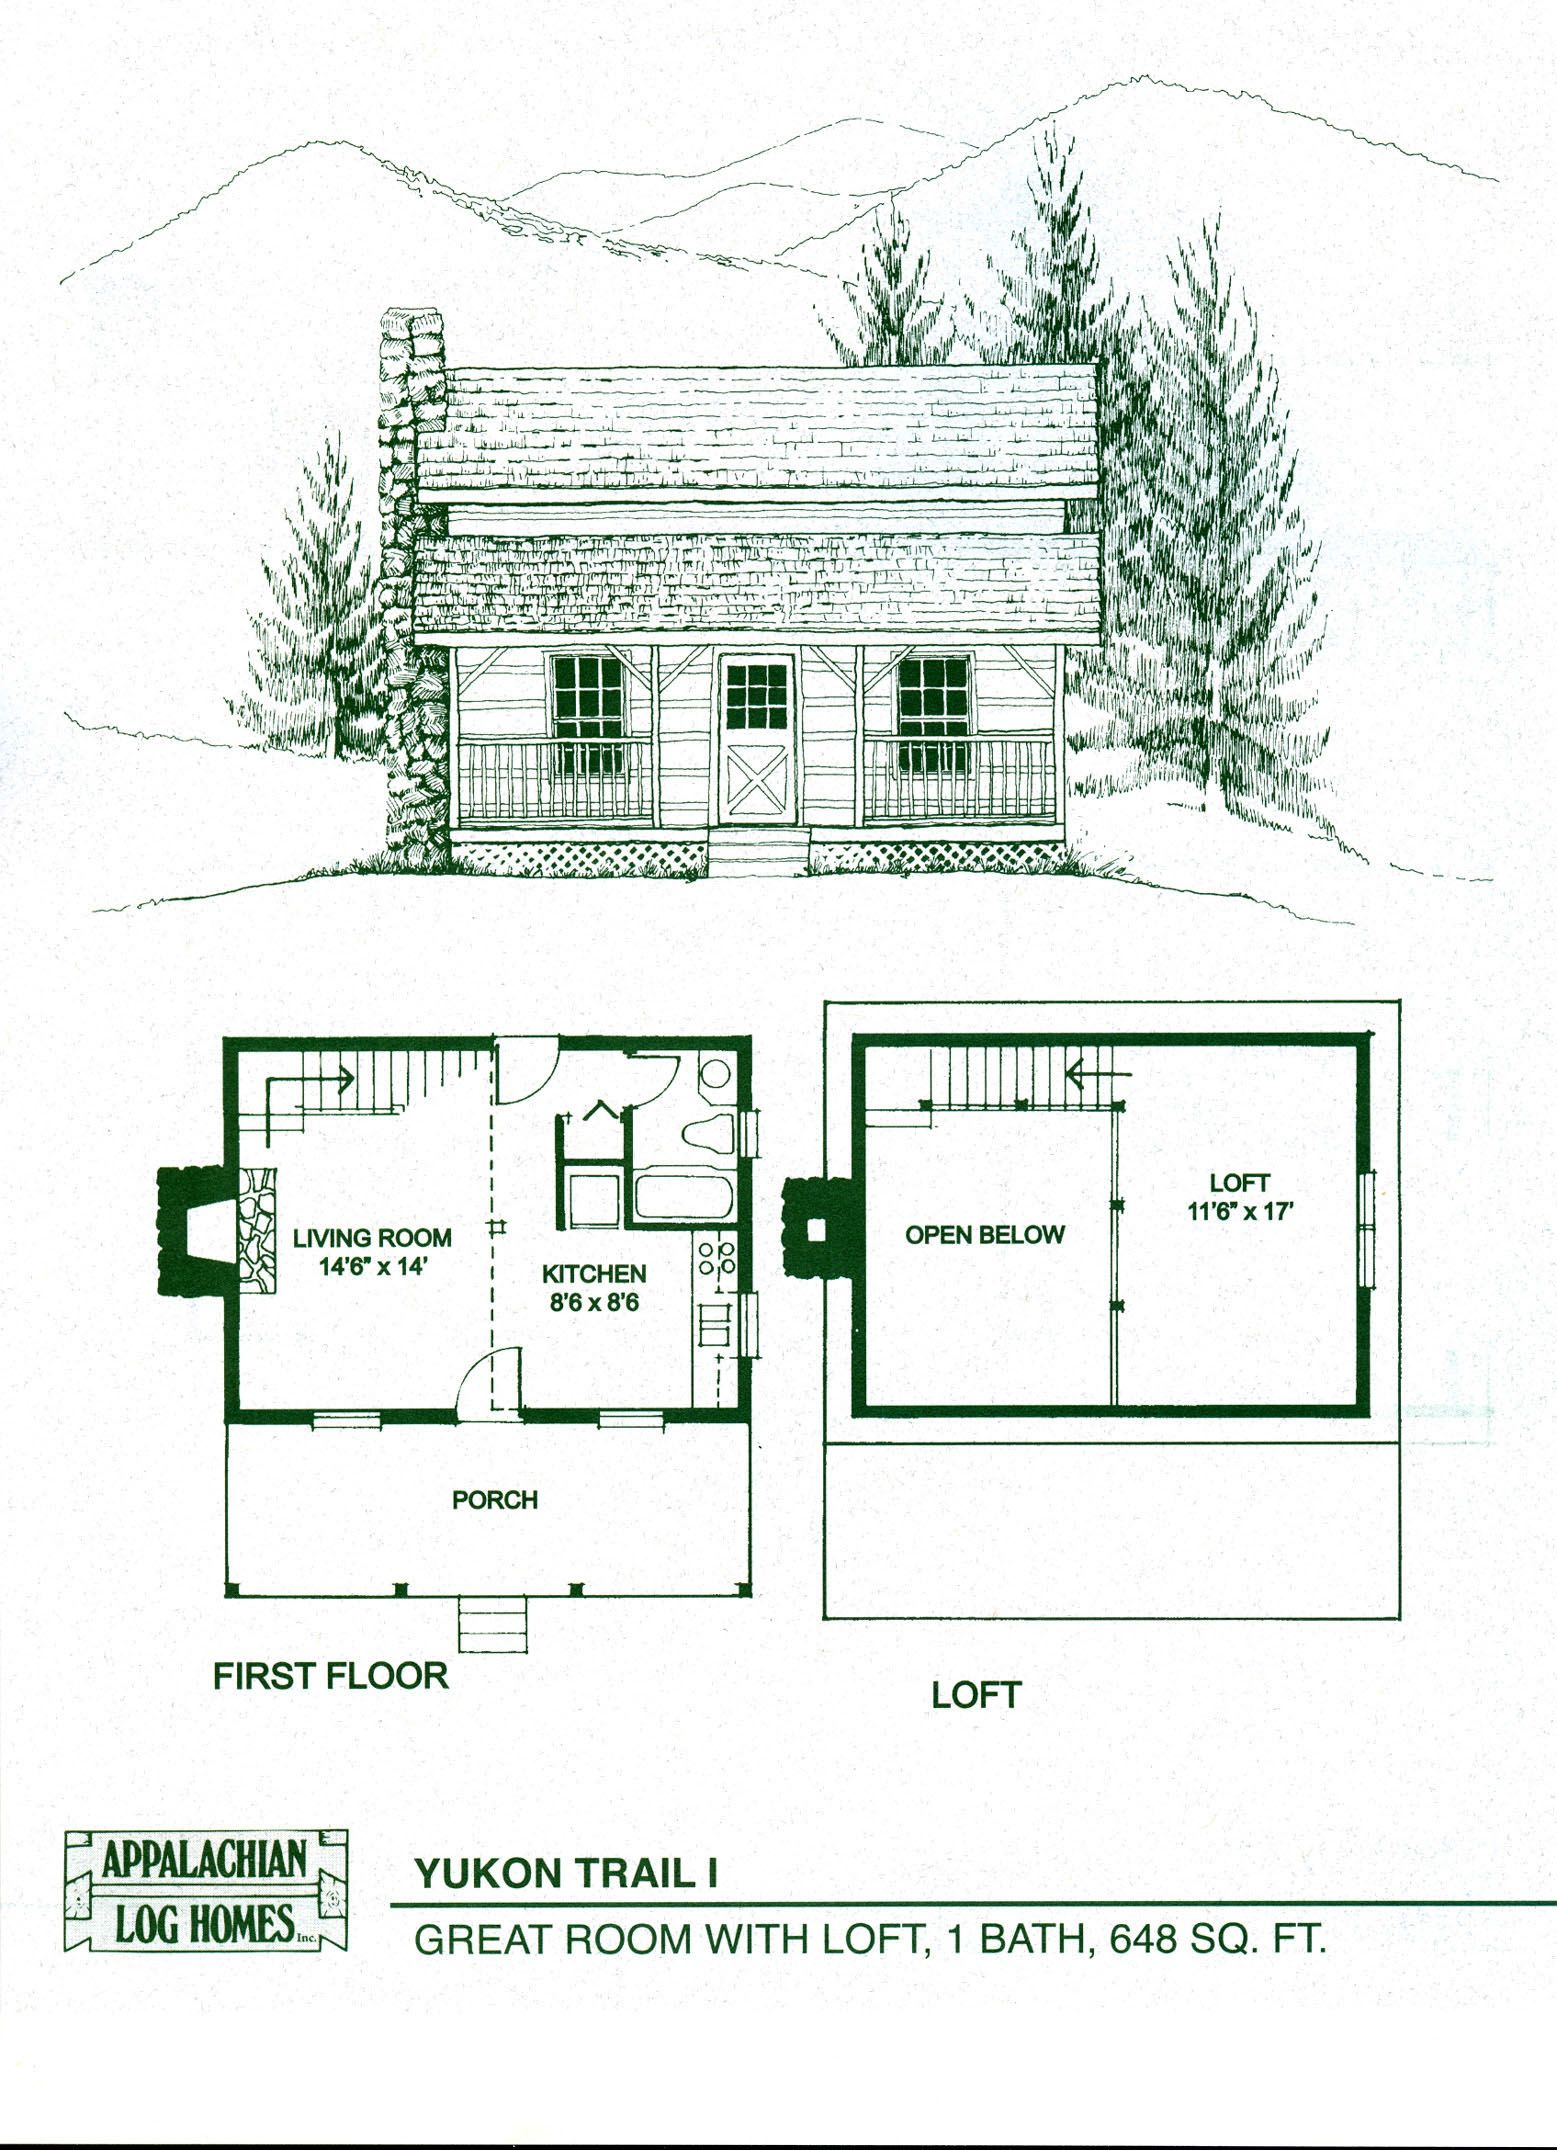 Log home floor plans log cabin kits appalachian log Micro home plans free